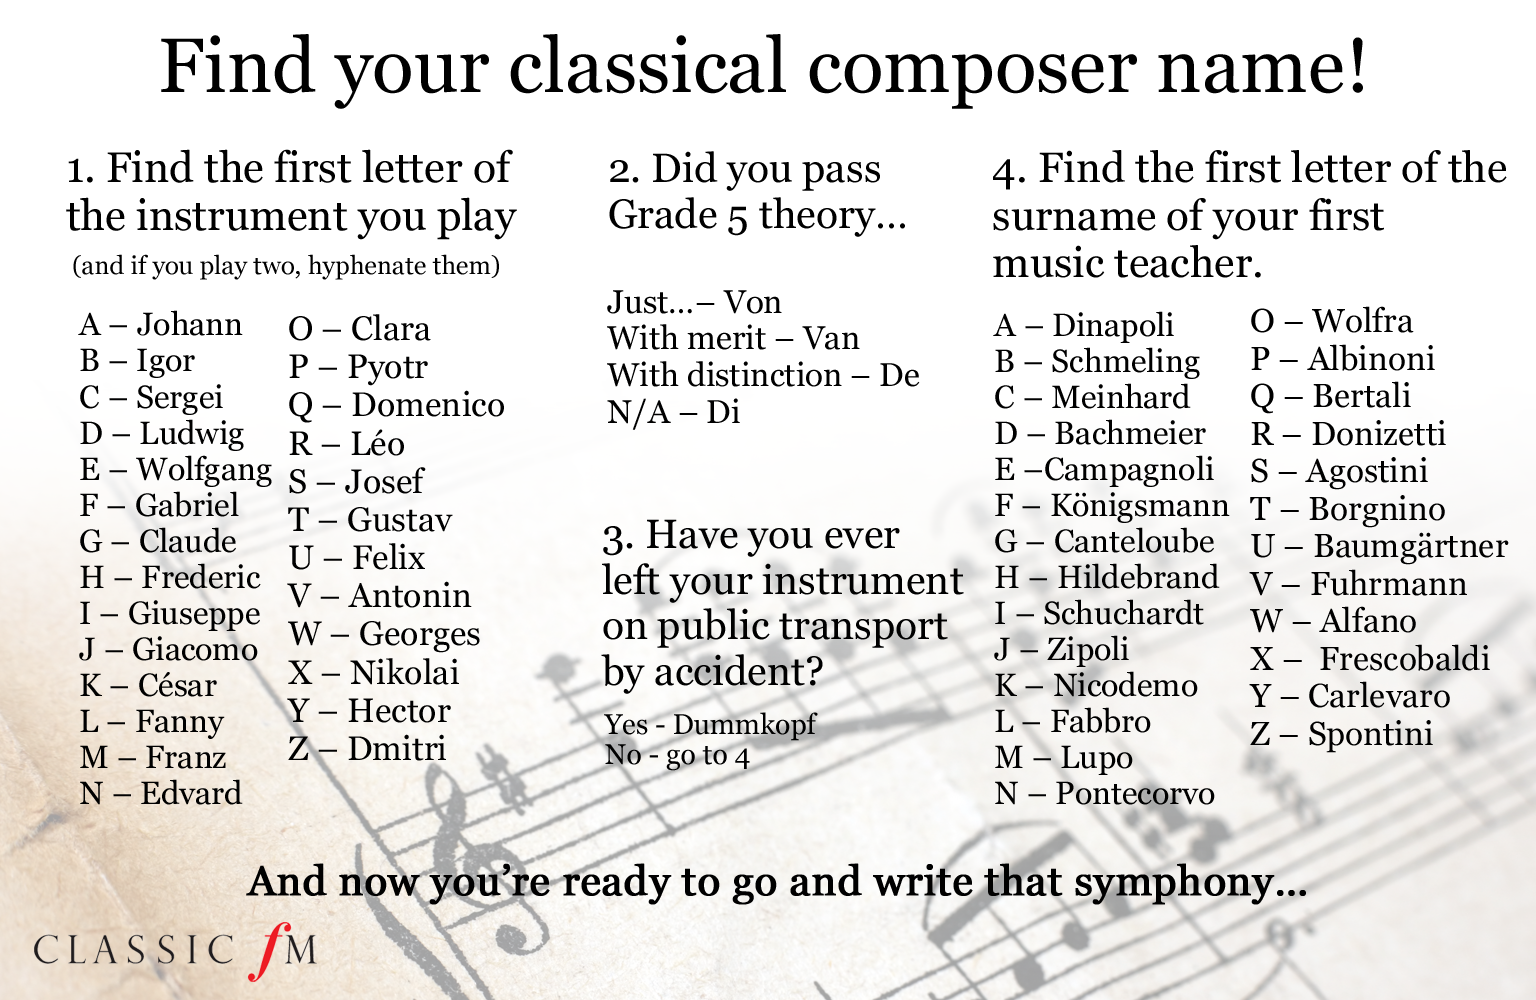 Composer name graphic